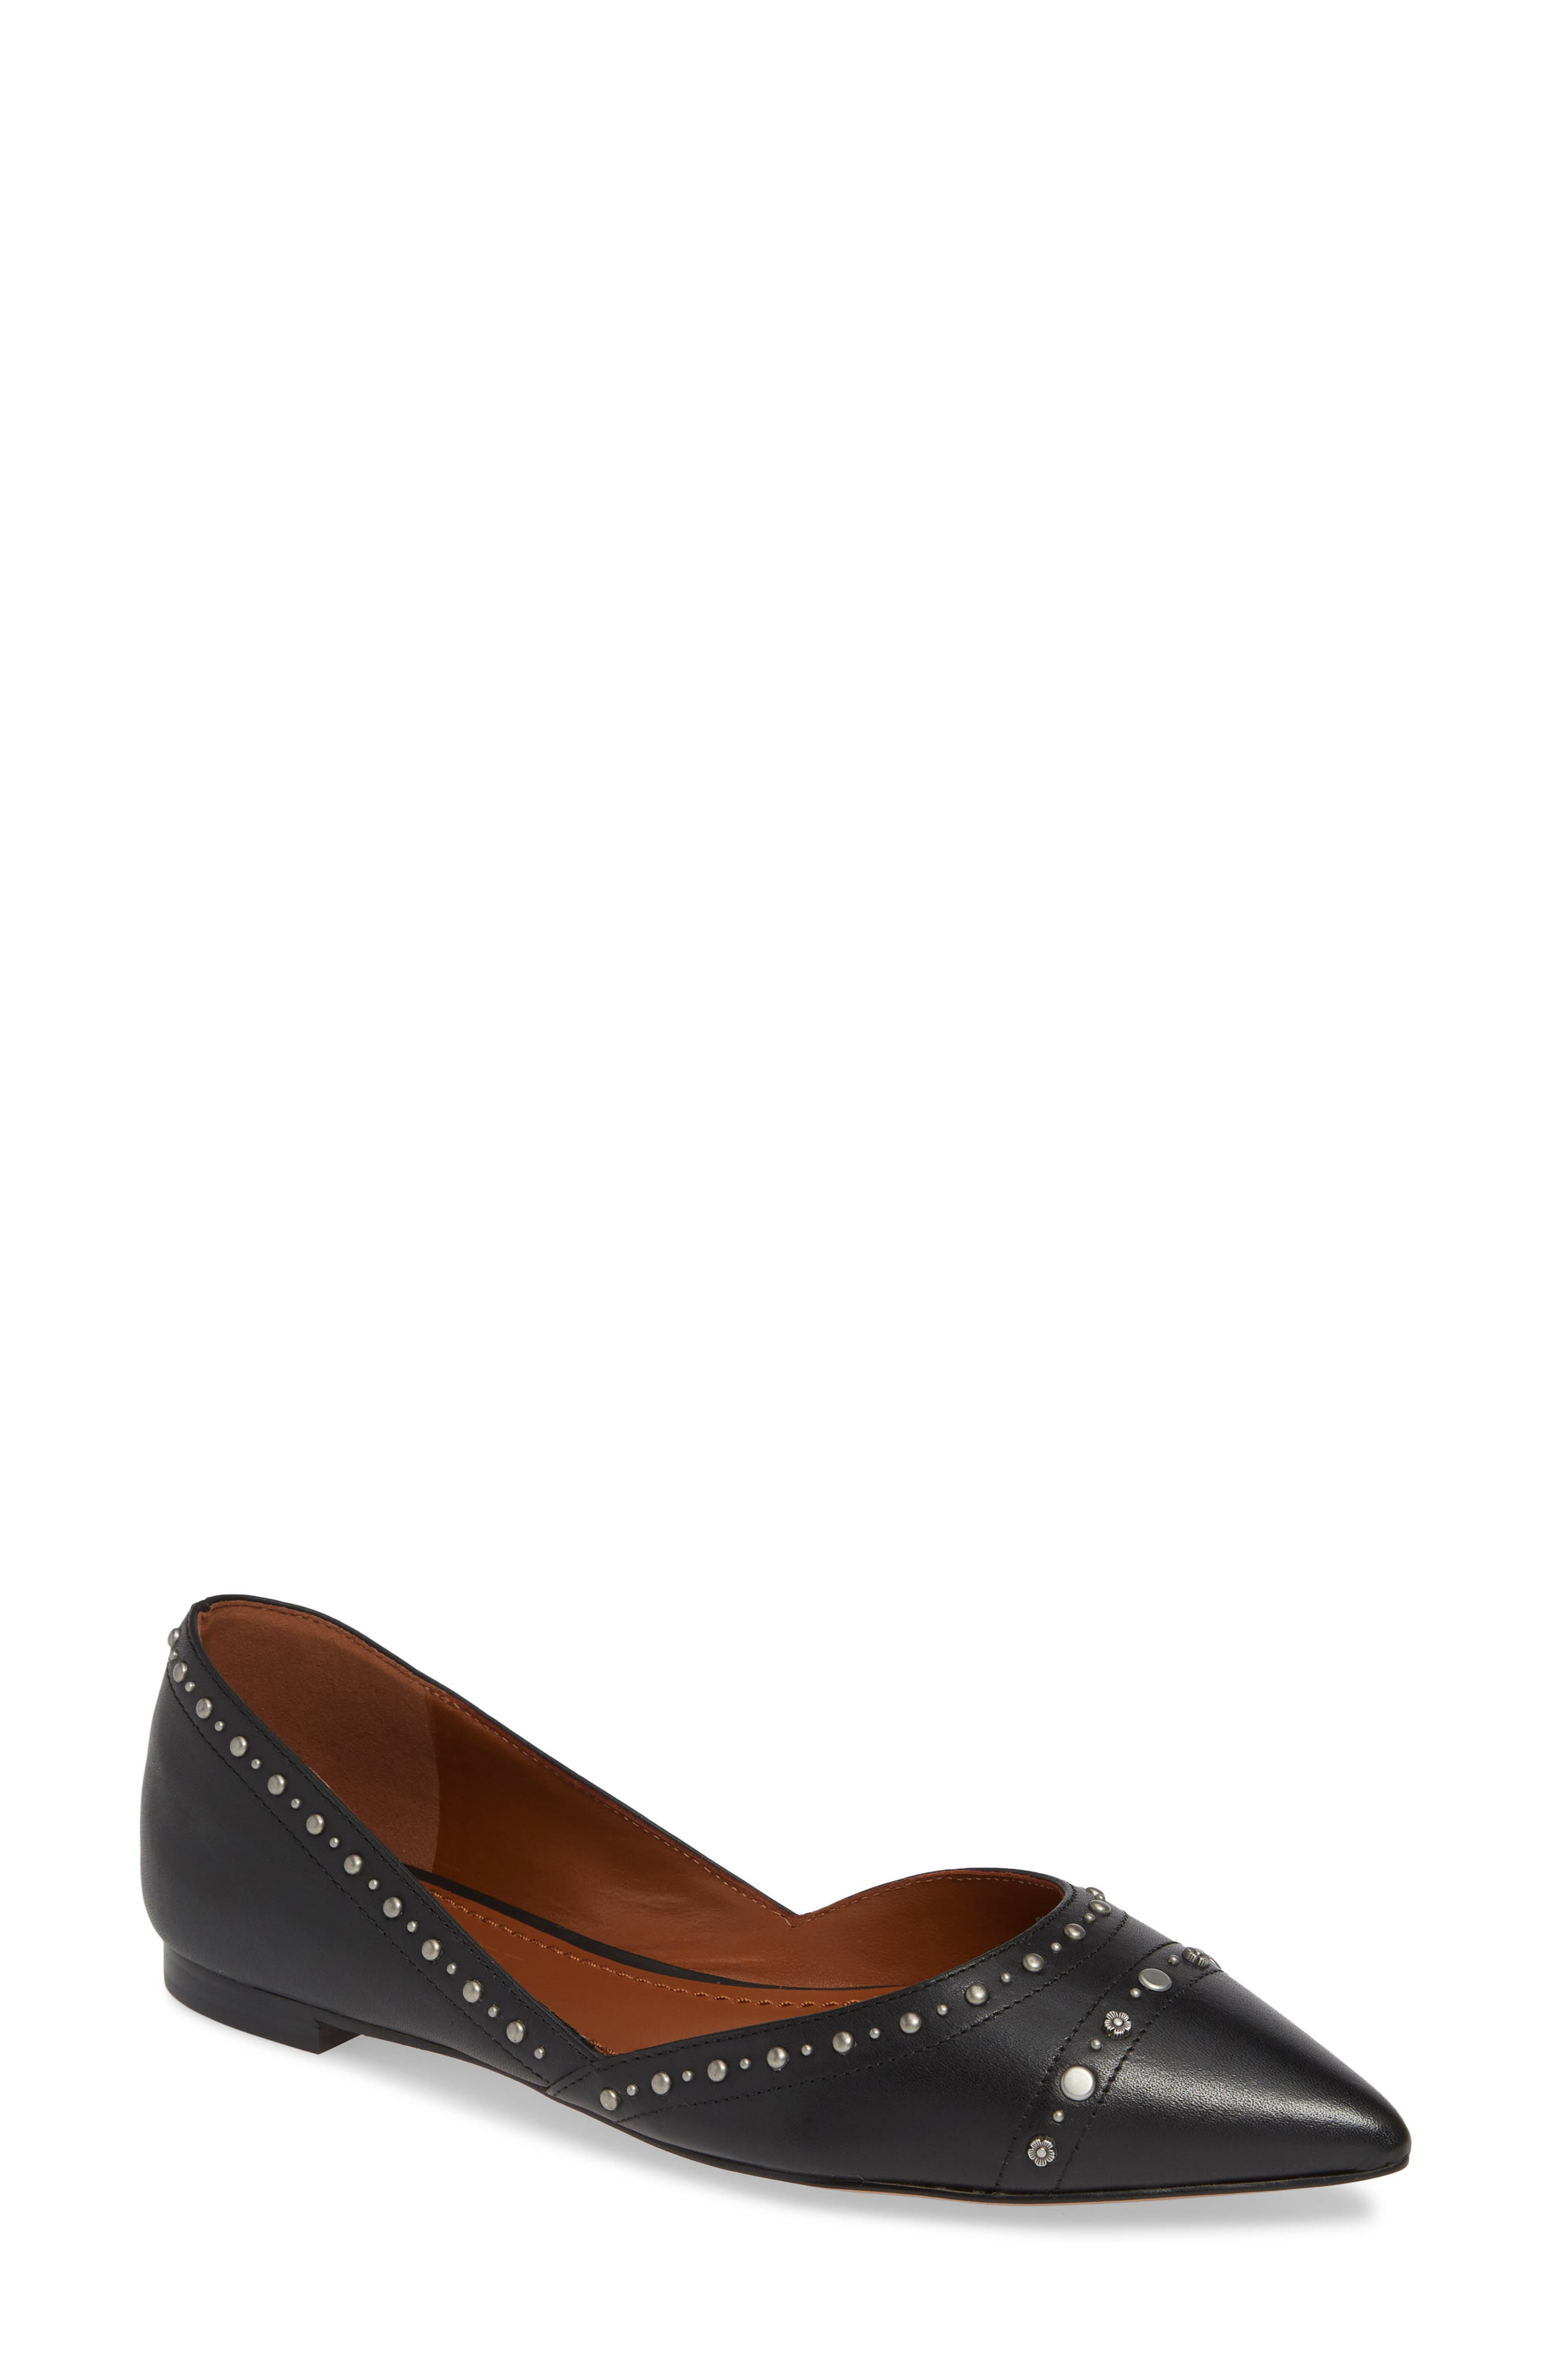 Valintina Pointed Toe Flat, Main, color, BLACK LEATHER